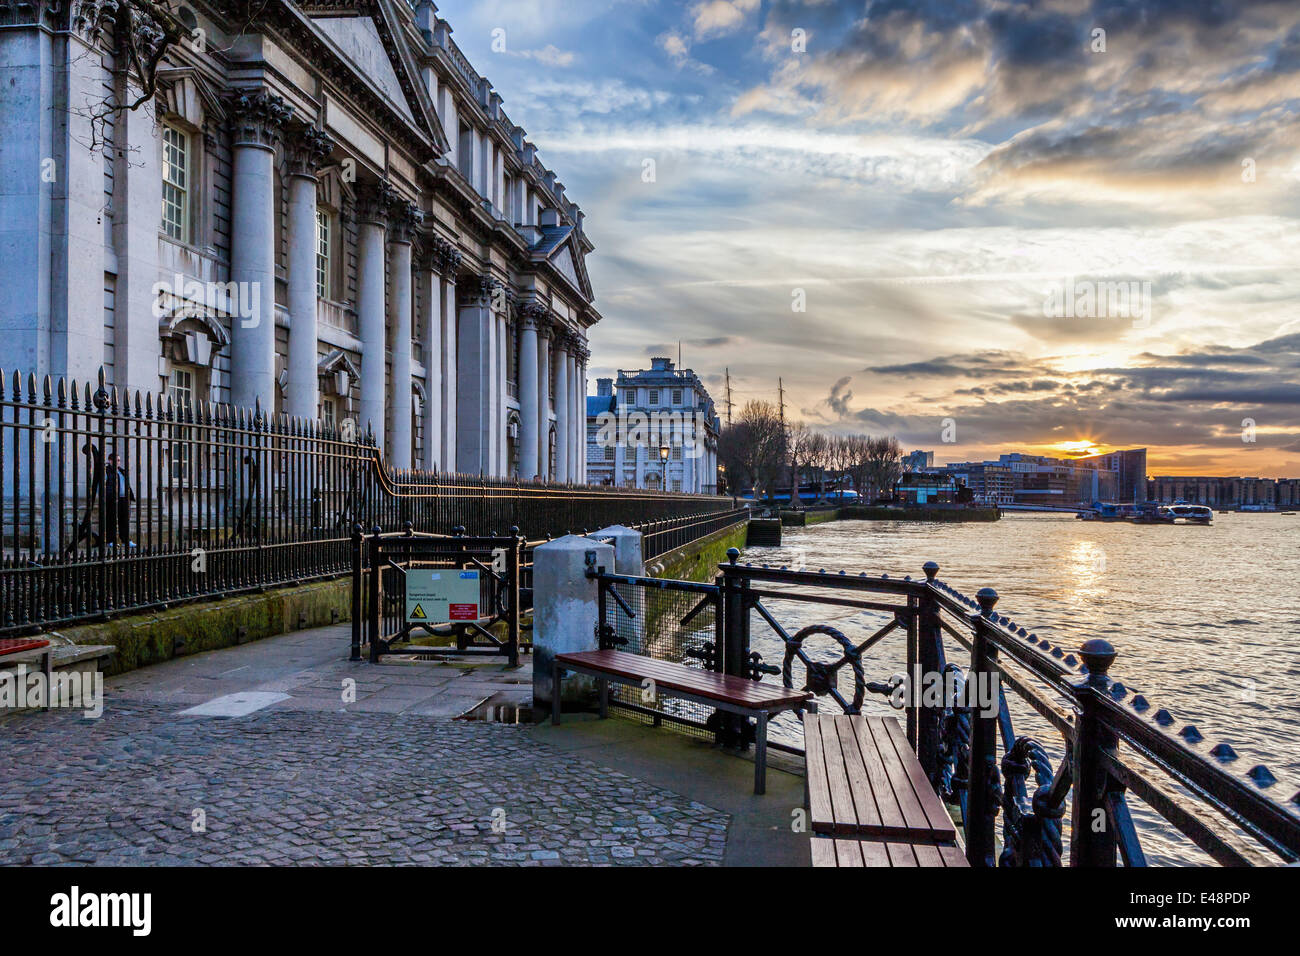 Sunset view of the Old Royal Naval College and river Thames from the Thames path in Greenwich, London, UK Stock Photo